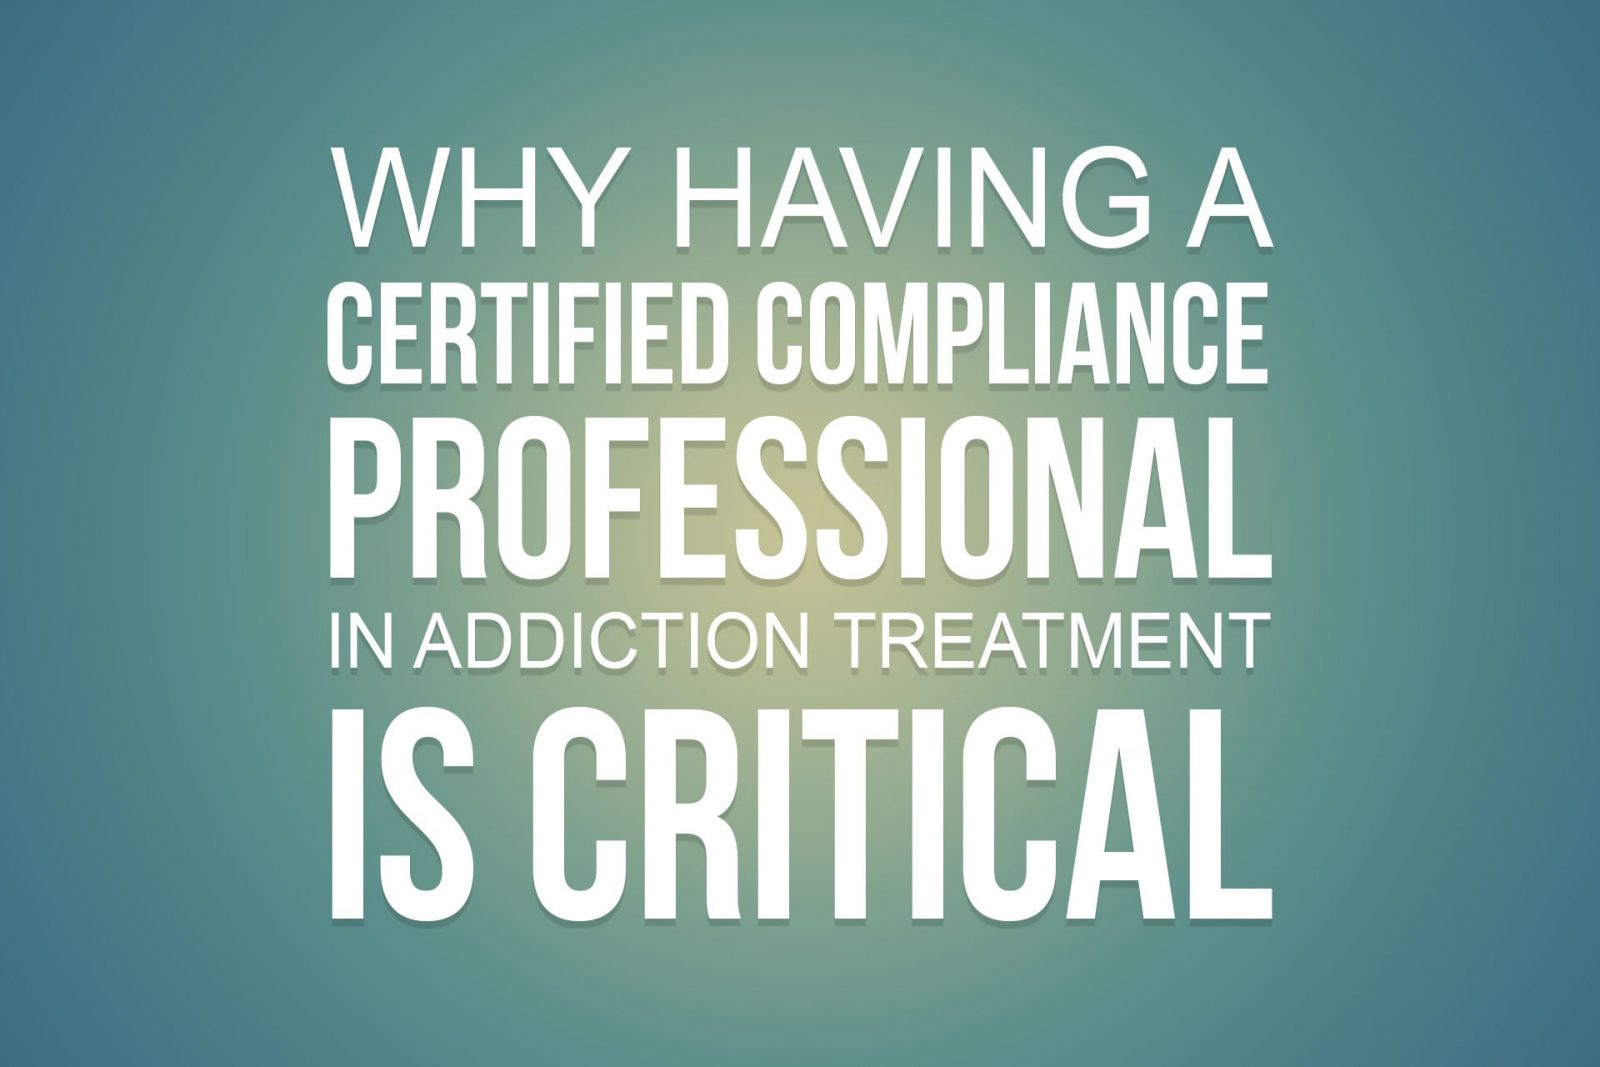 Why Having a Certified Compliance Professional in Addiction Treatment is Critical